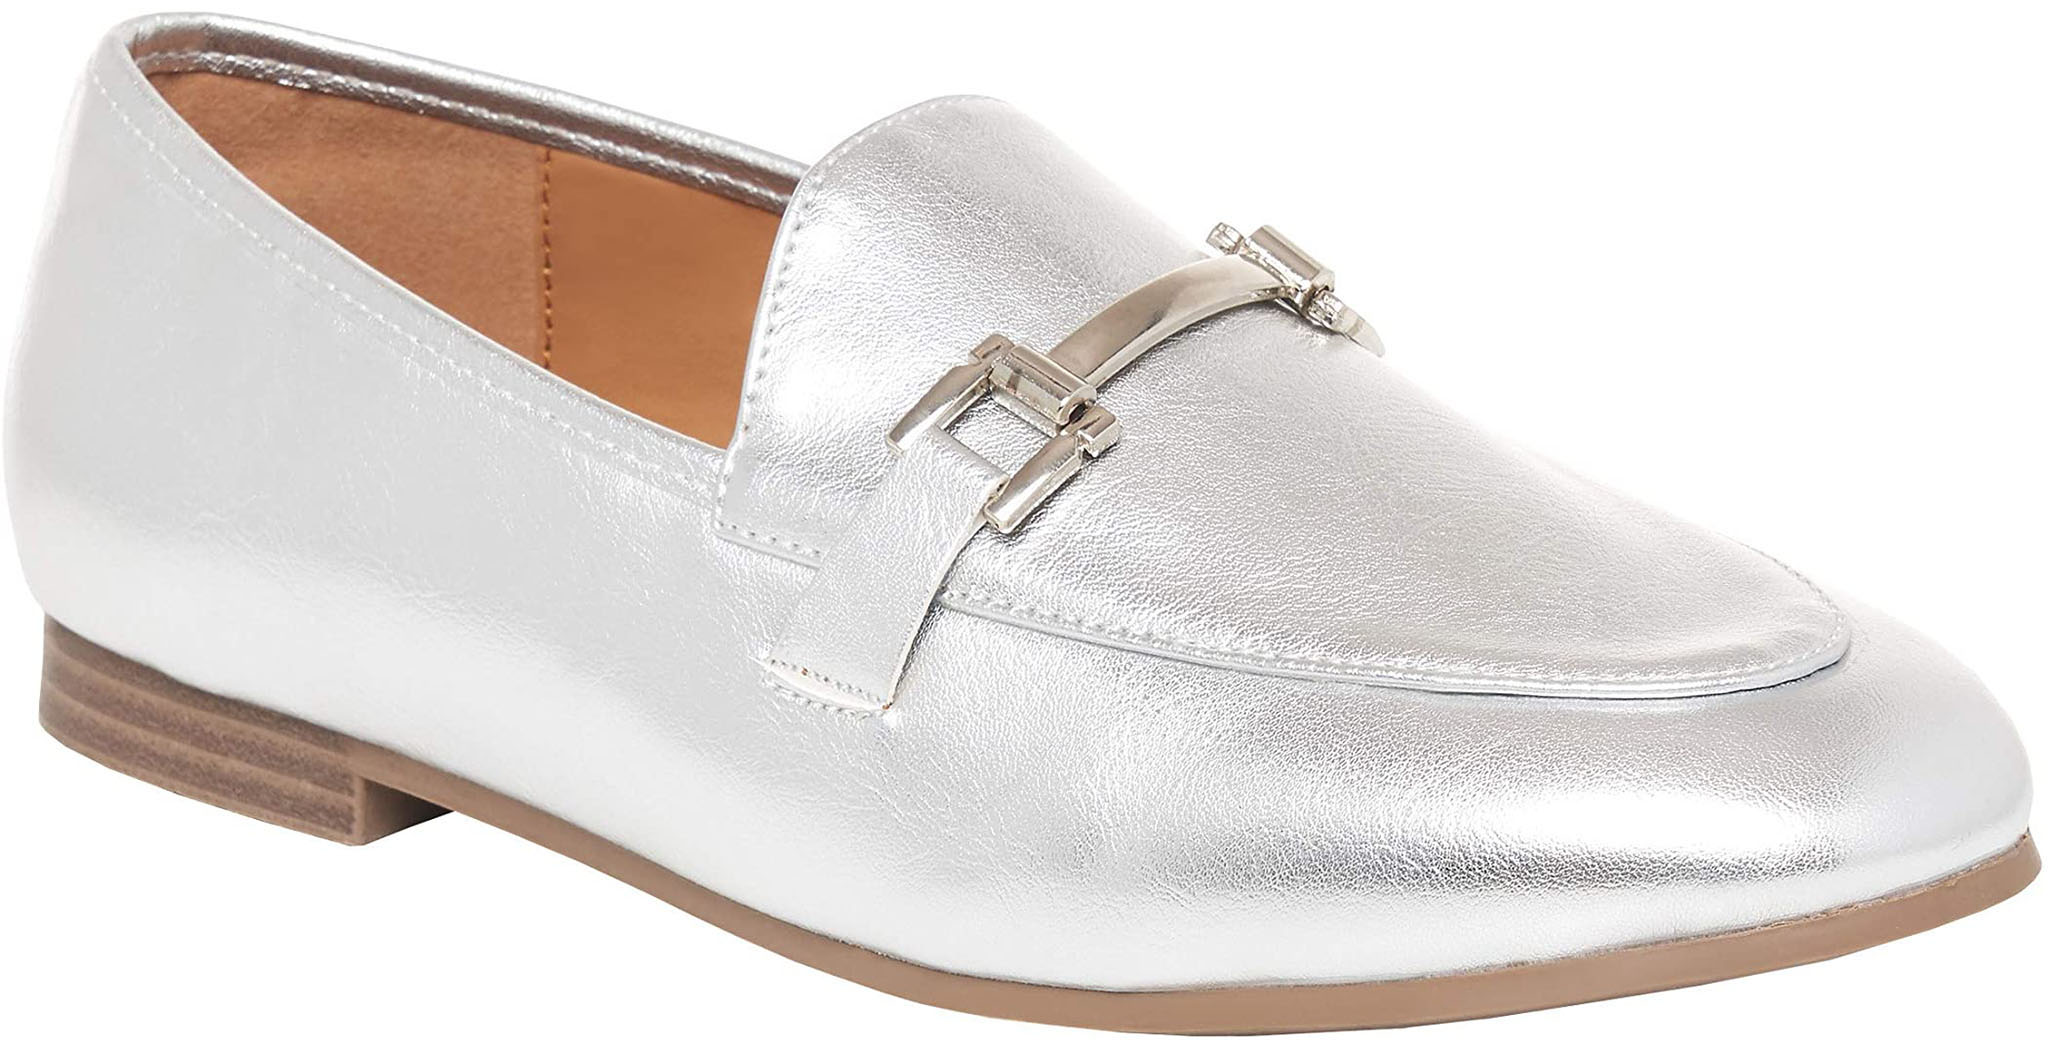 Add instant glamour to your little white dress with the Rohb by Joyce Azria Shira synthetic leather loafers